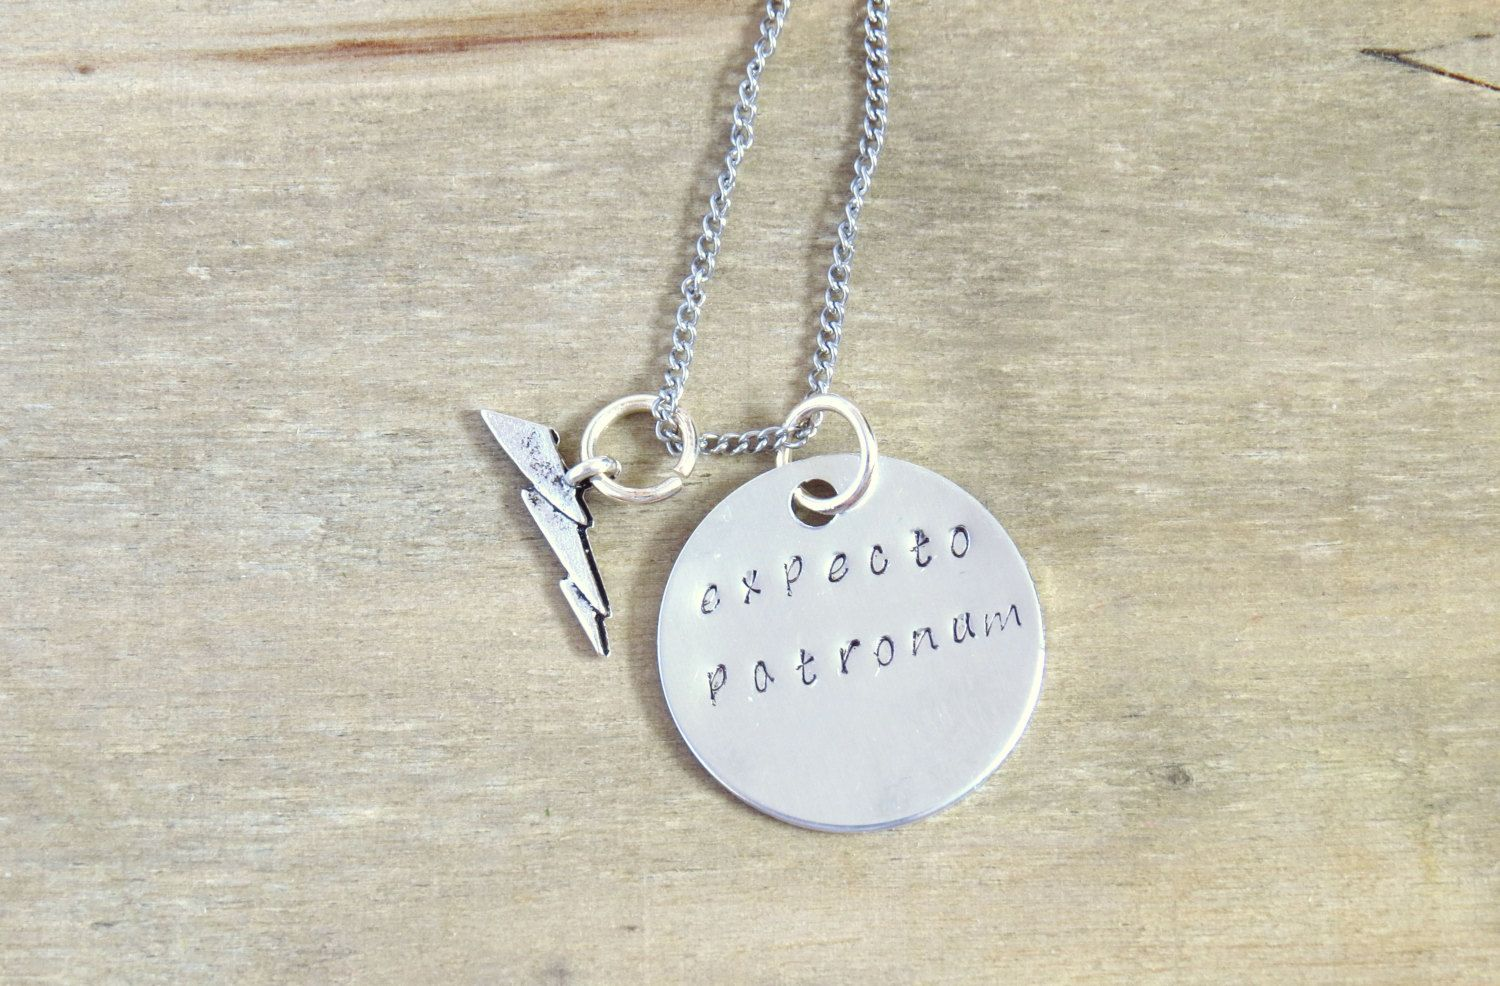 Harry Potter Inspired Necklace Expecto Patronum Spell Silver Lightning Bolt Charm Hand Metal Stamped Aluminium Disc Under 20 Dollars